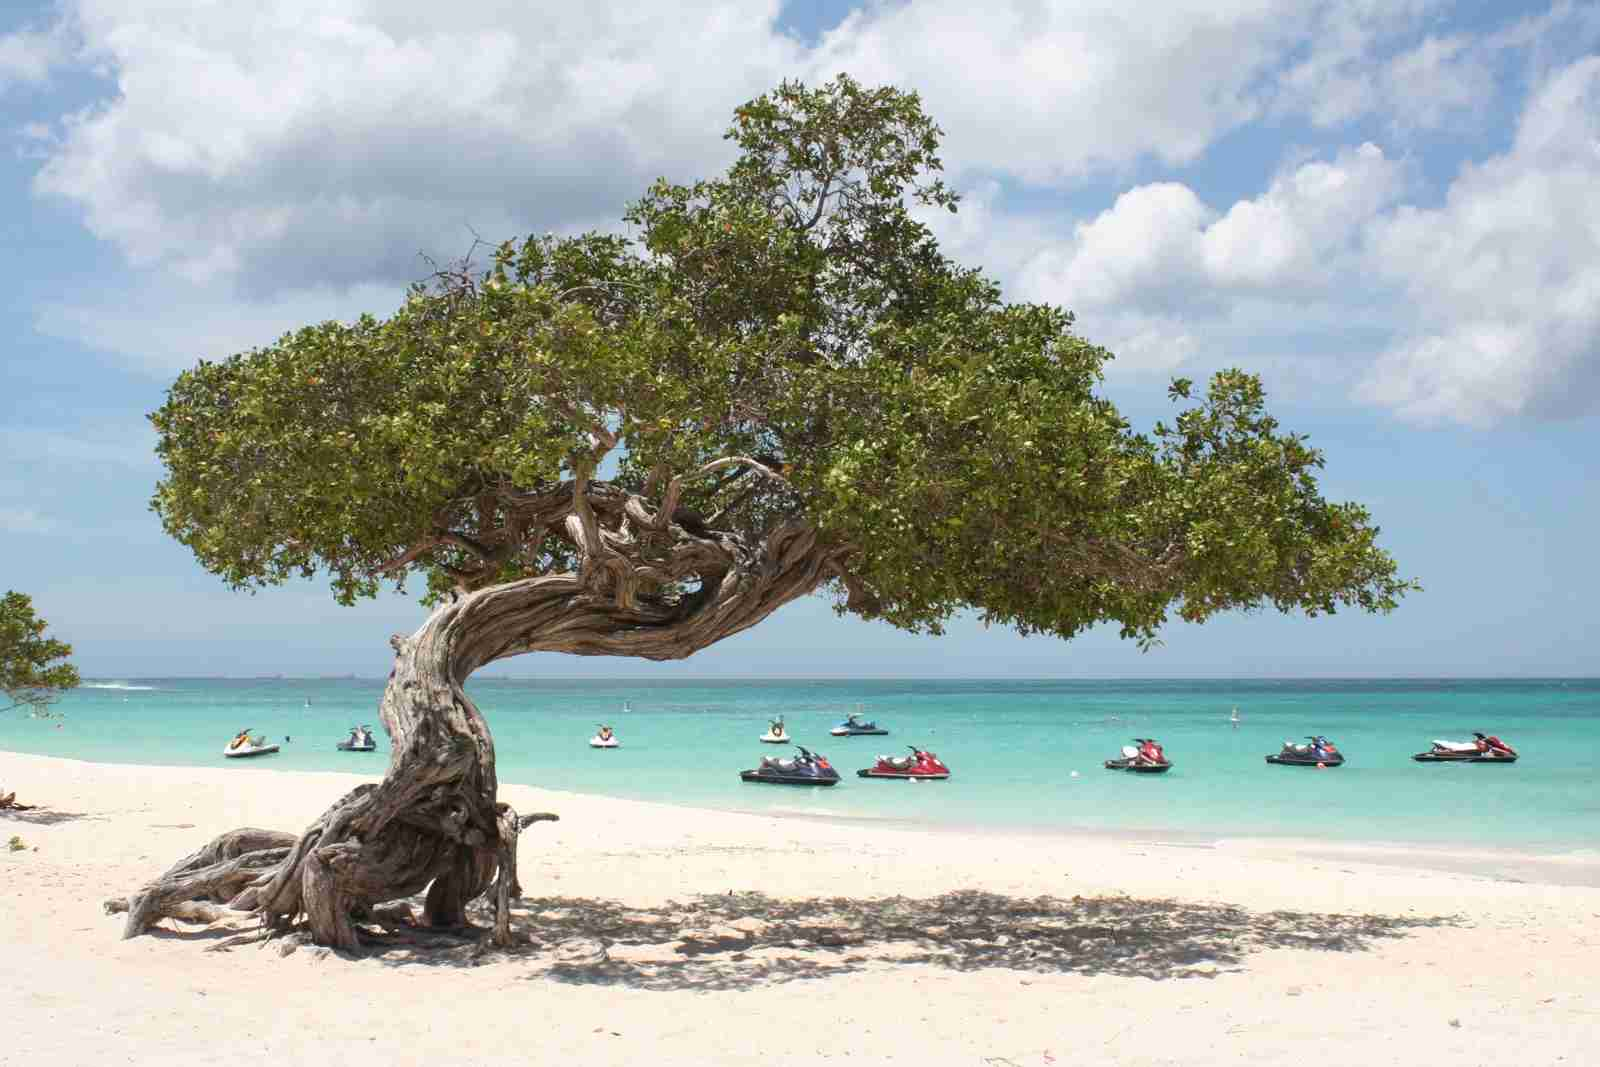 Eagle Beach in Aruba. (Photo by Marc Boettinger / Getty Images)